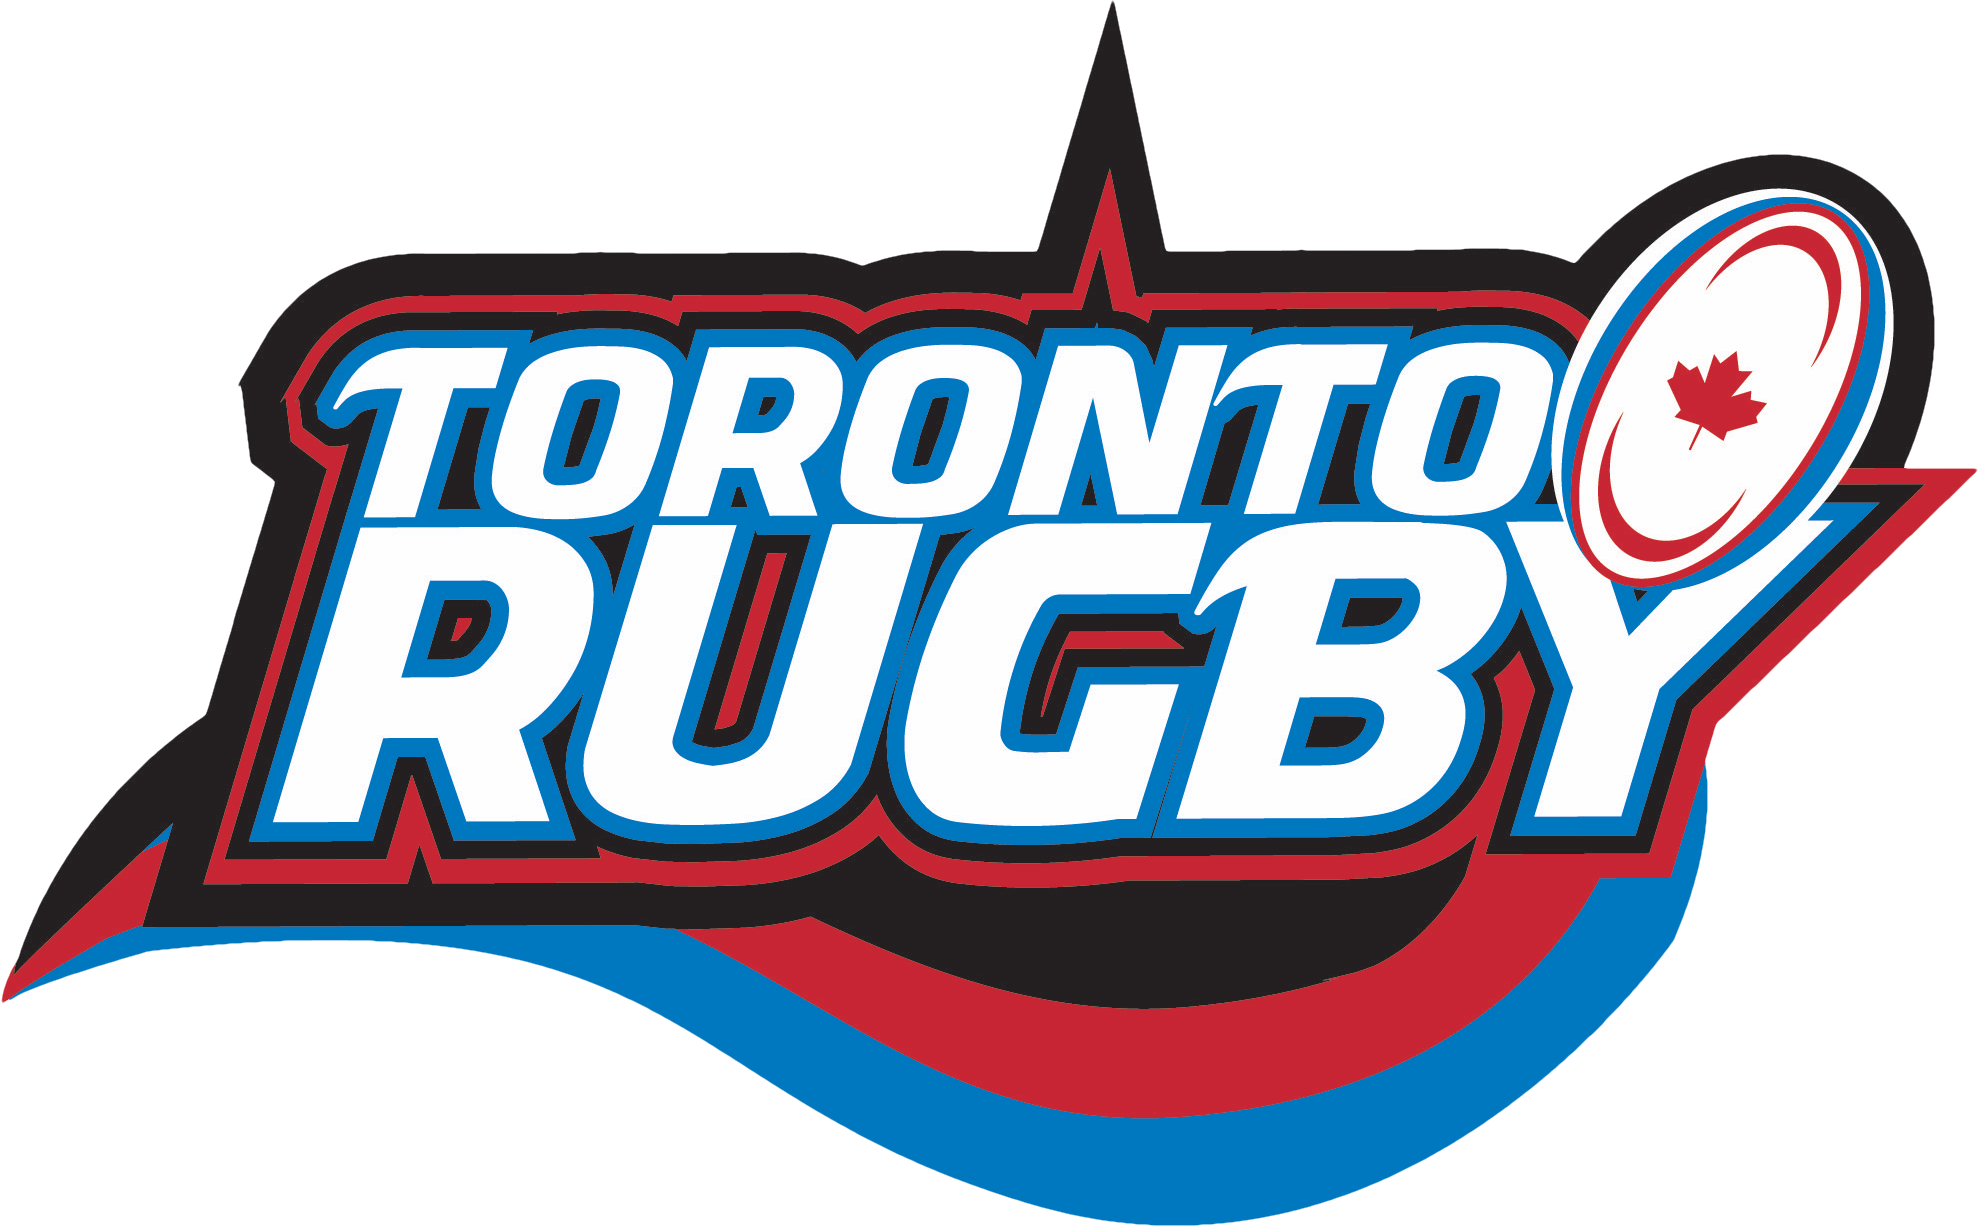 Toronto-Rugby-Logo.png